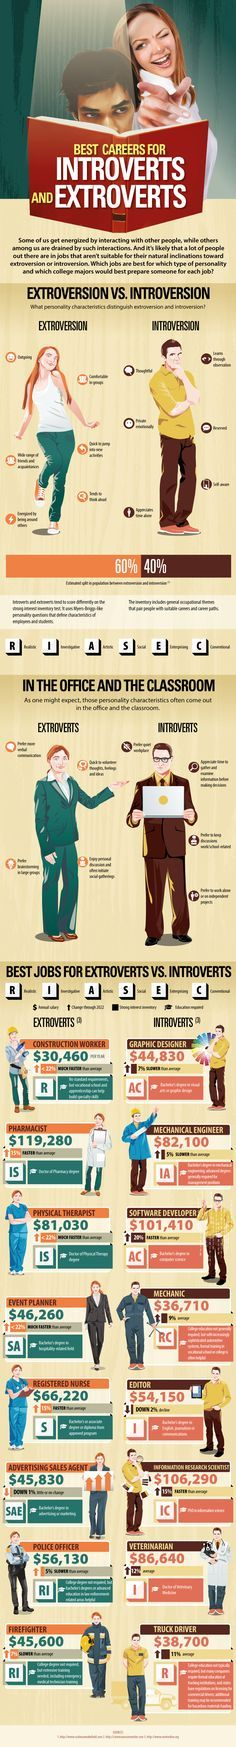 The best careers and college majors for extroverts and introverts - career aptitude test